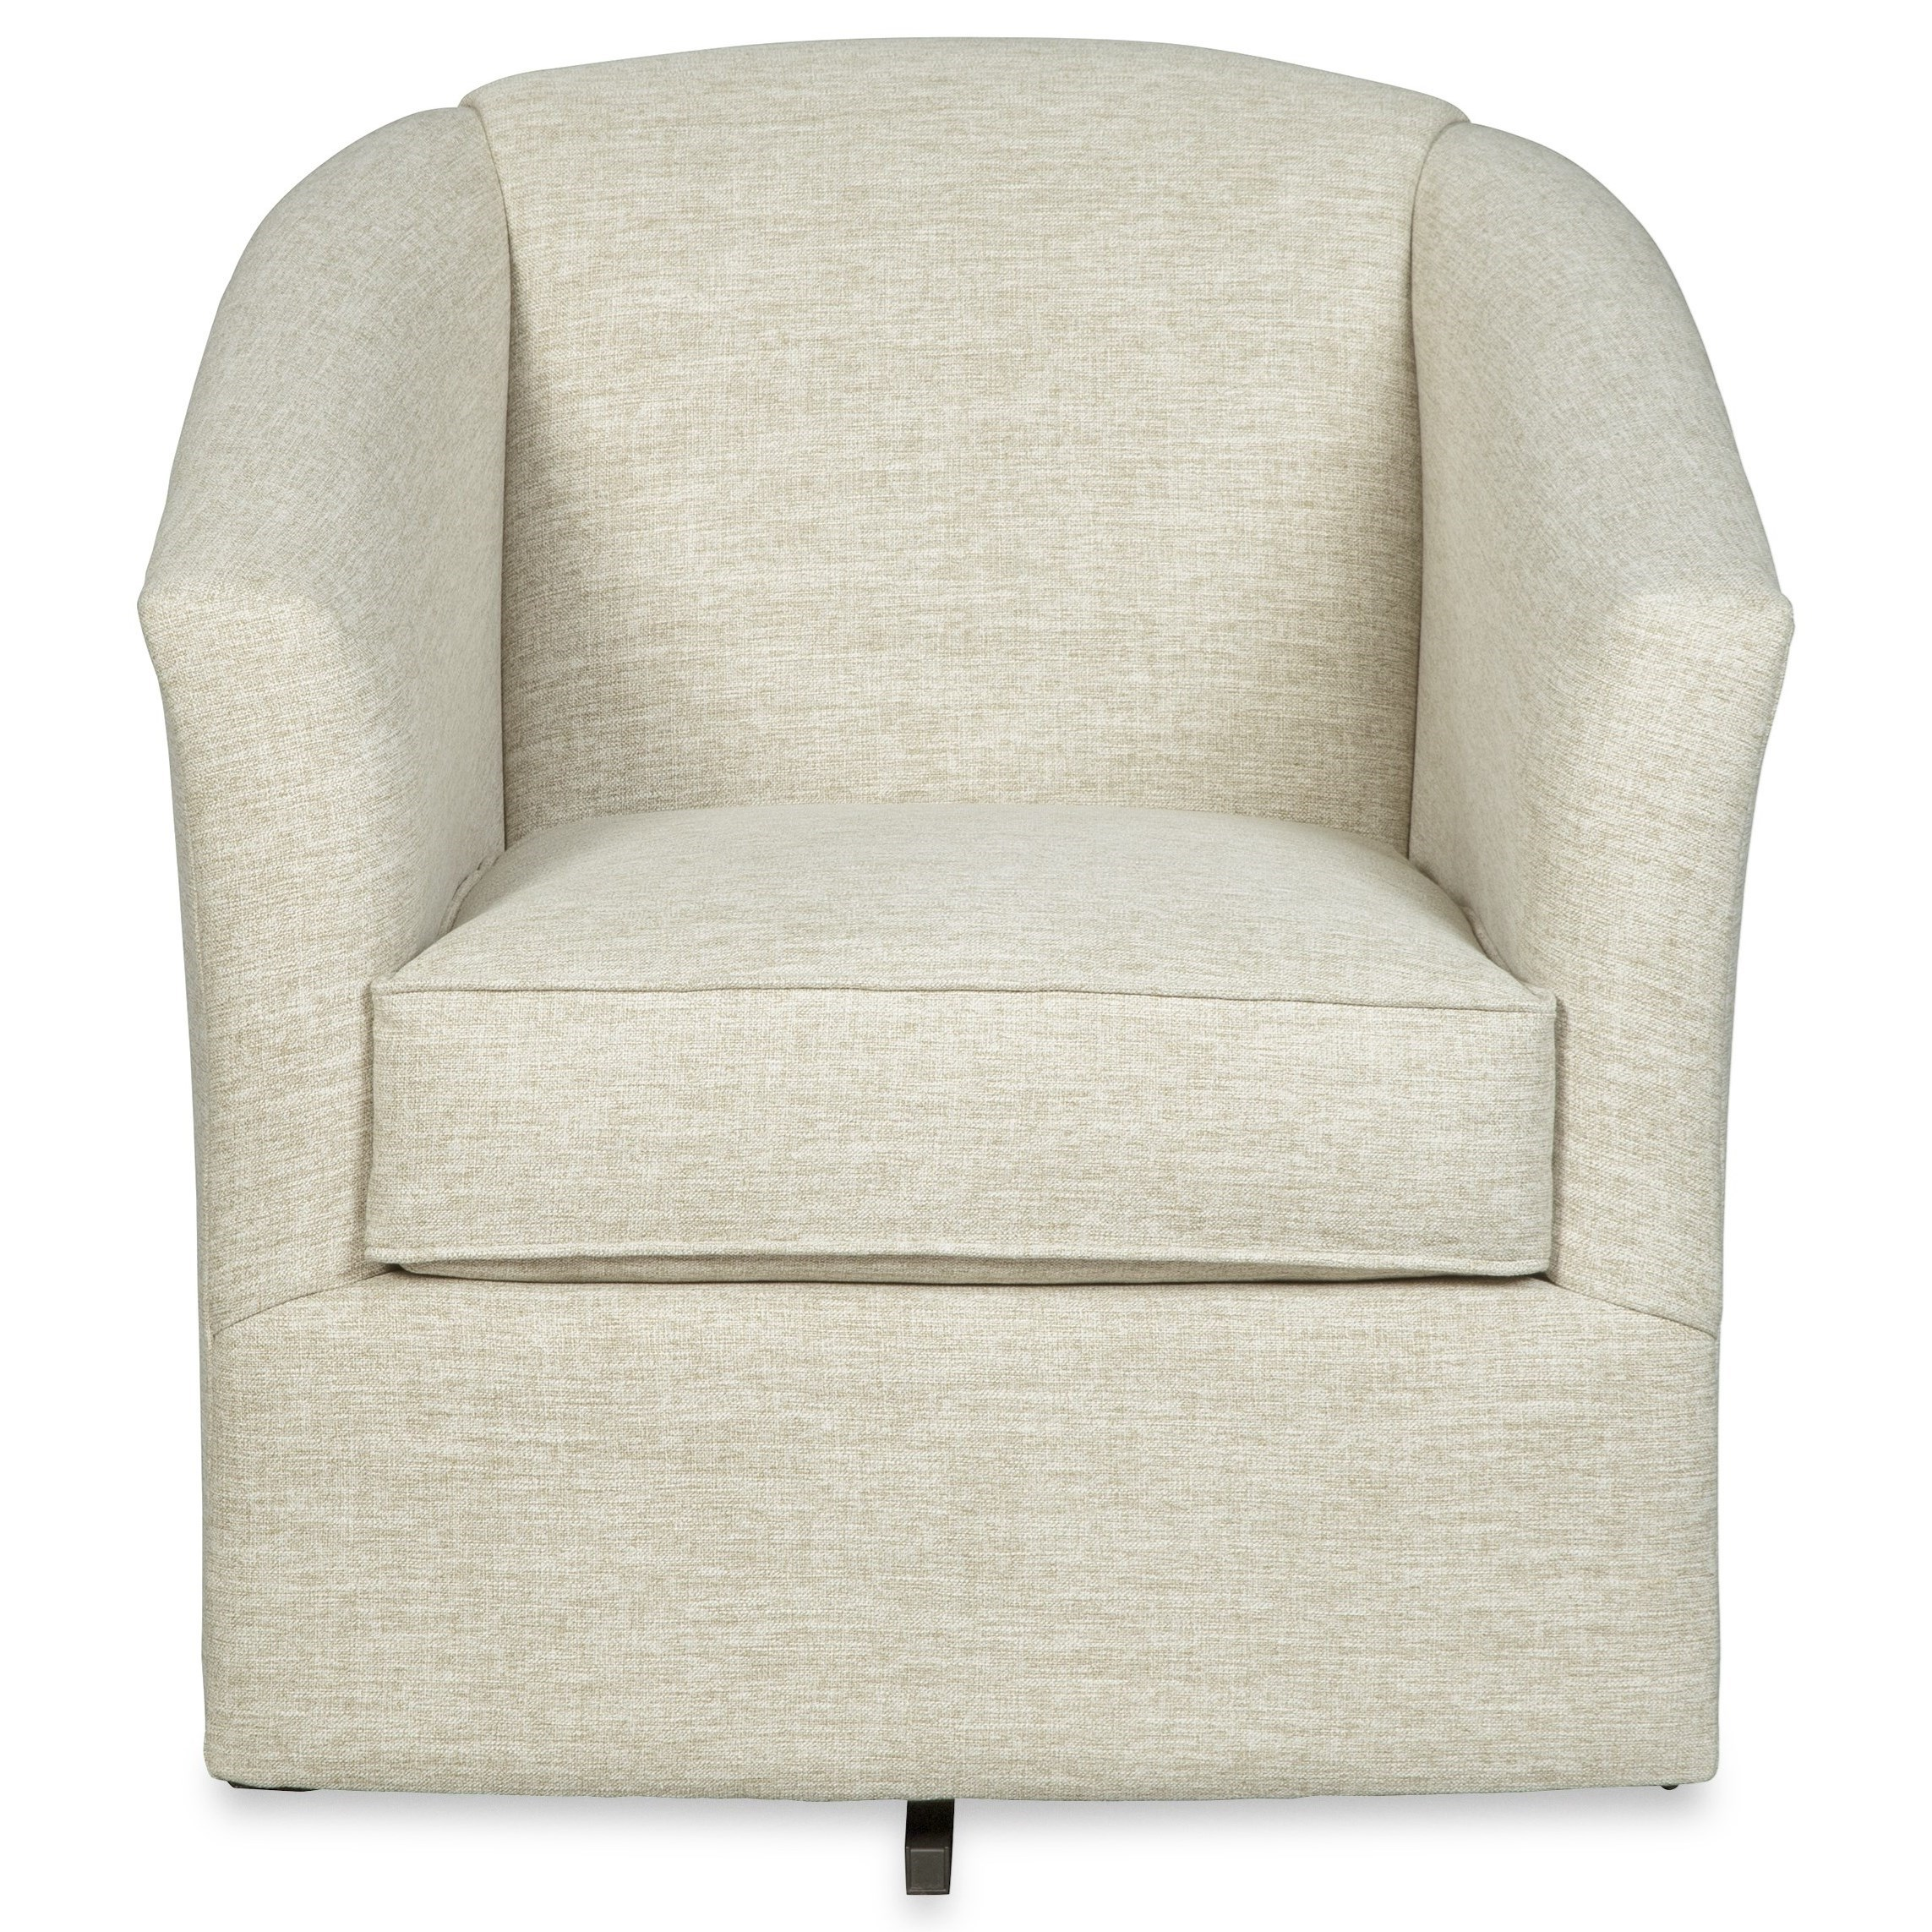 092910SC Swivel Chair by Craftmaster at VanDrie Home Furnishings